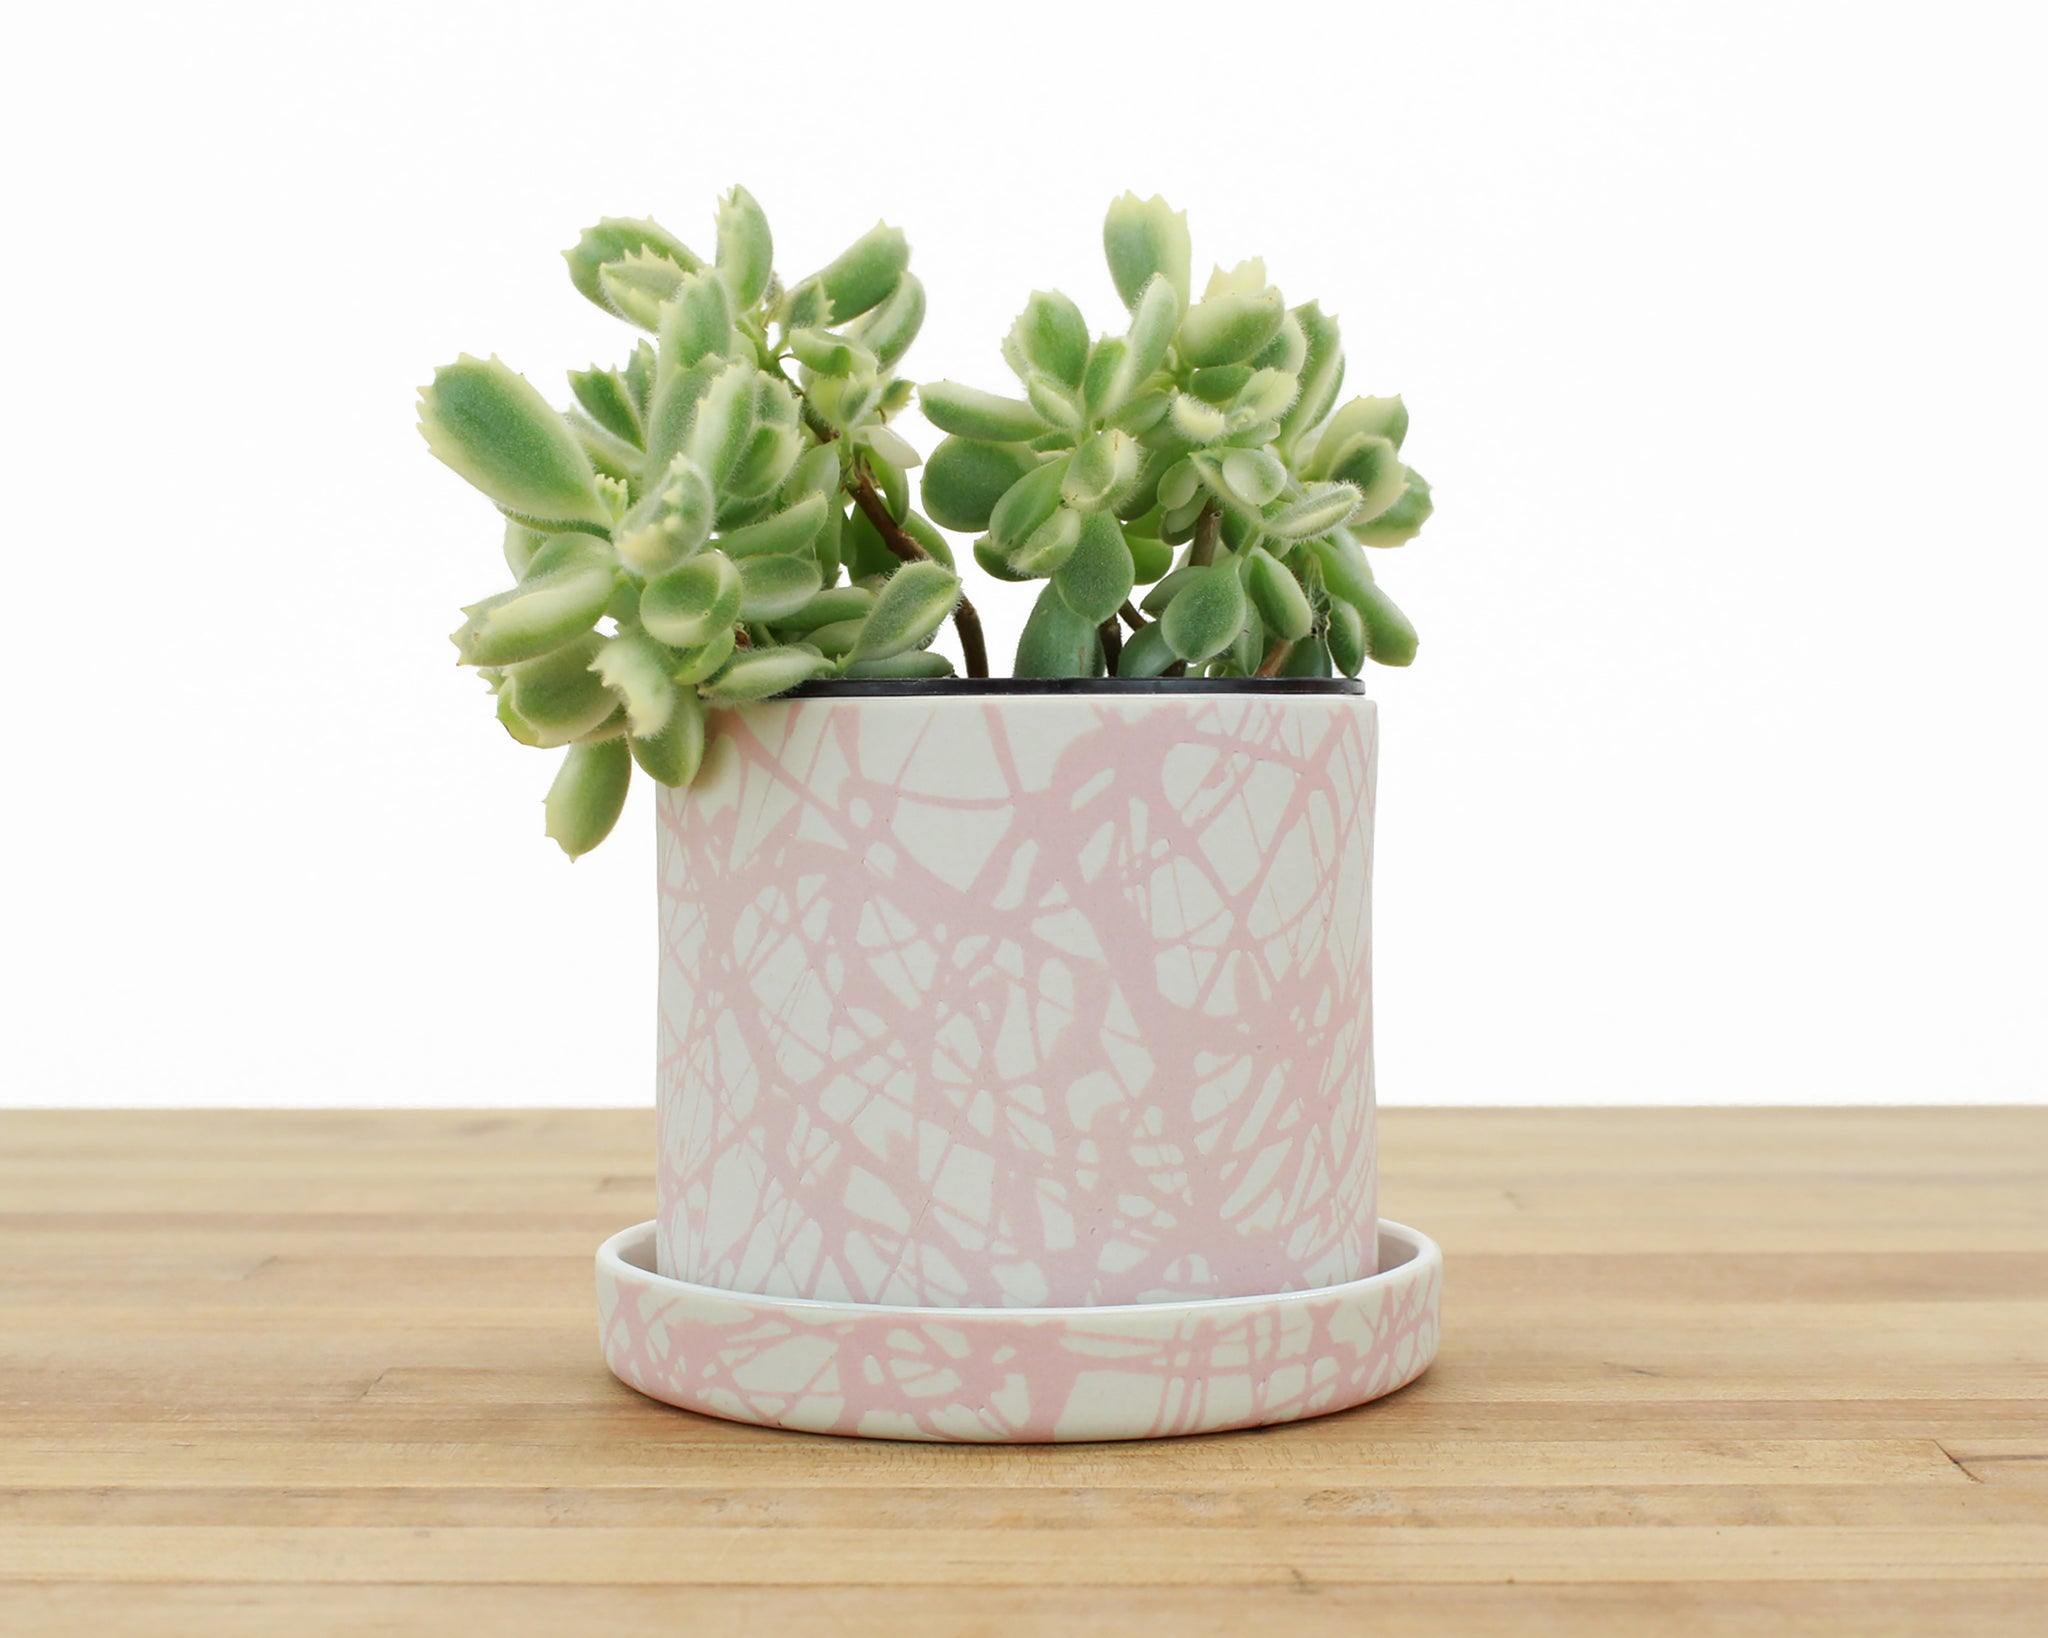 4 inch Cylinder Planter with Saucer - Blush Splatter